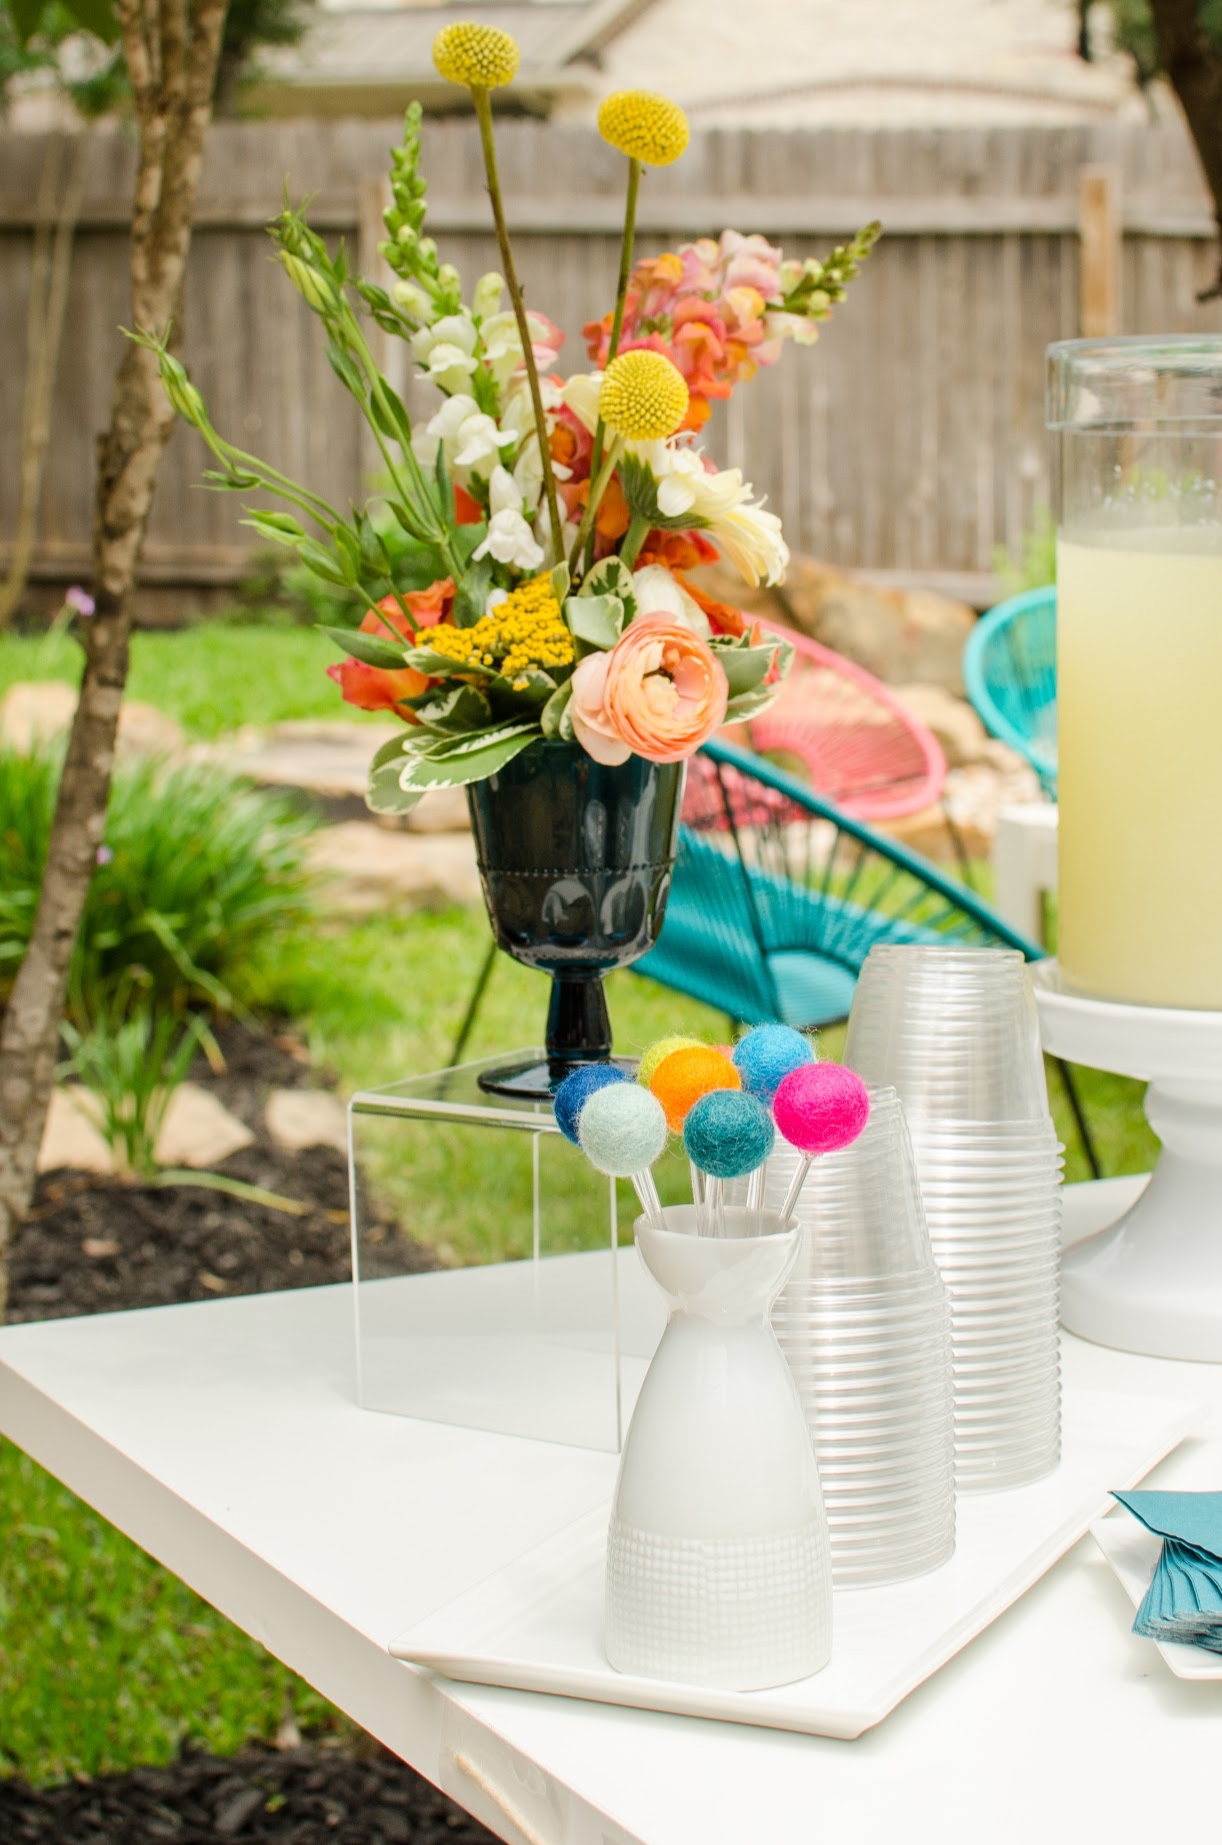 Floral summertime party ideas for a drink station. See more from this Grad Party on Mint Event Design www.minteventdesign.com